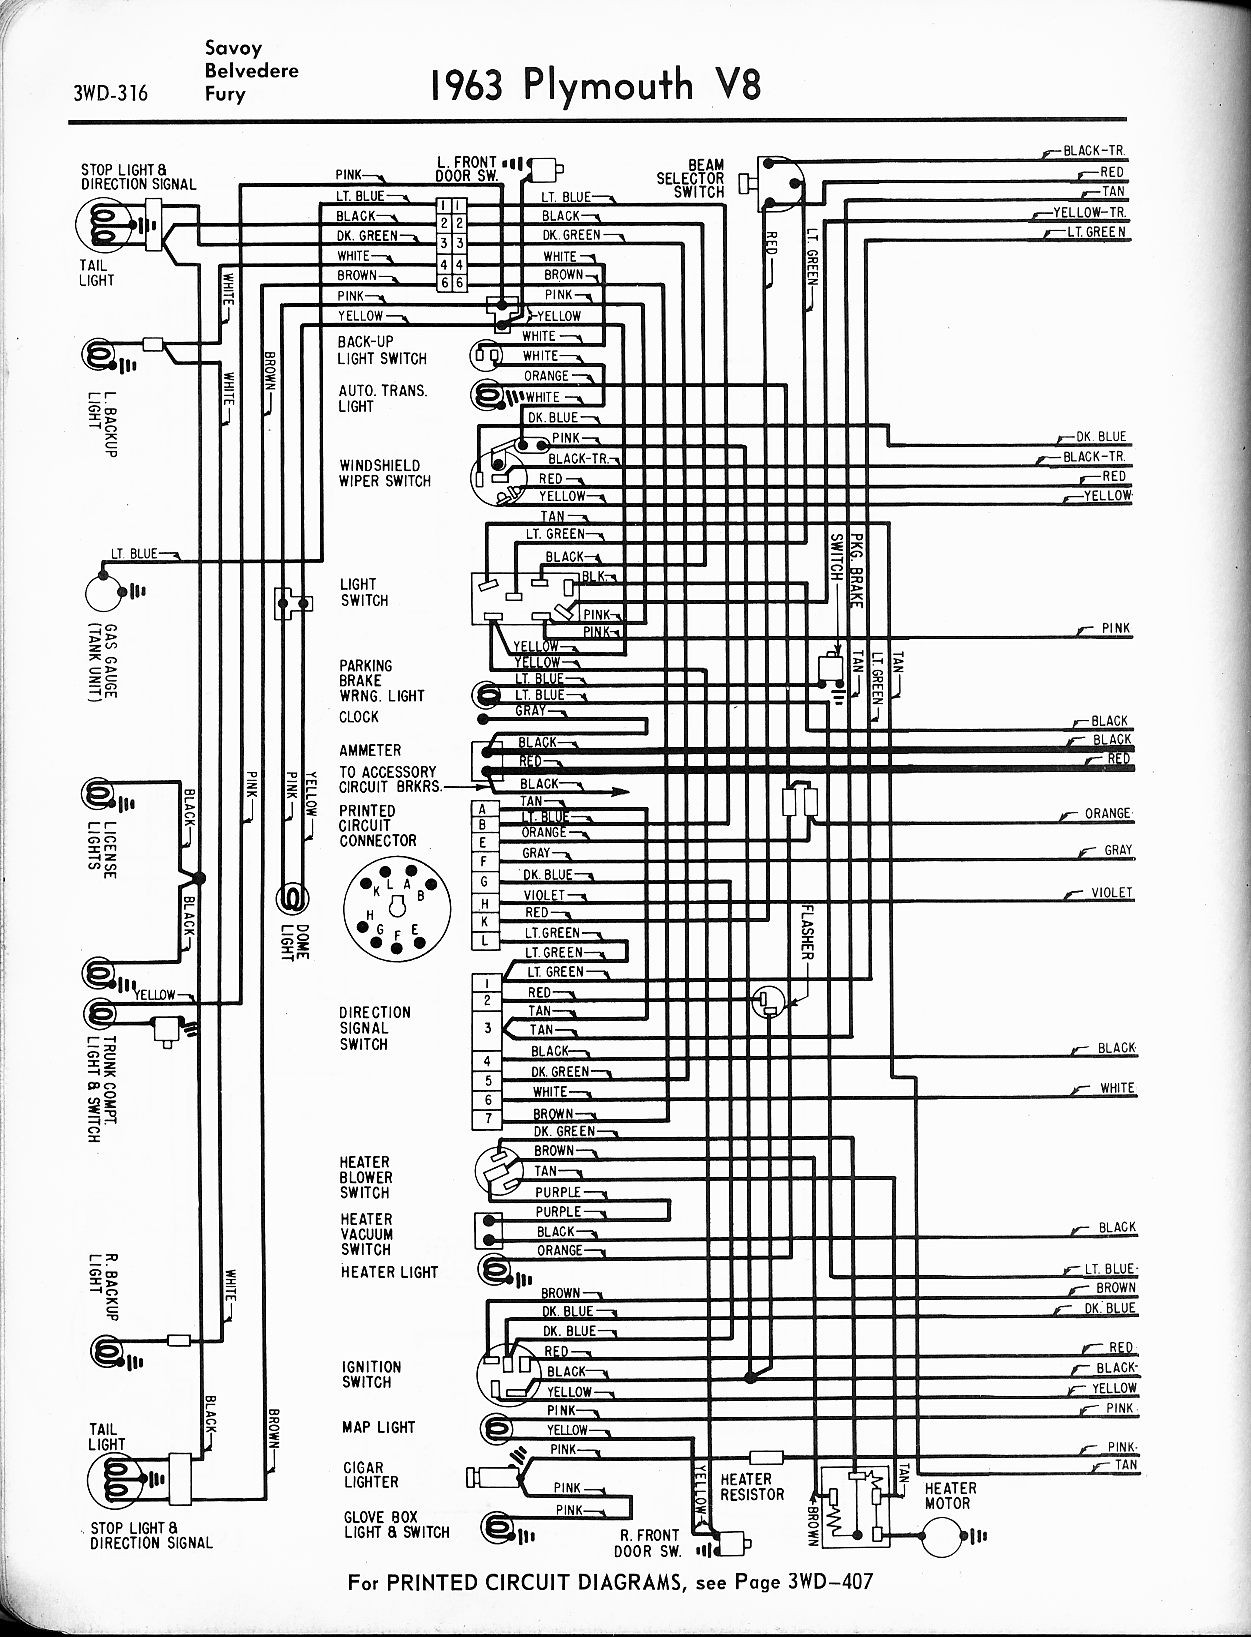 1964 Plymouth Sport Fury Wiring Diagram | Wiring Liry on